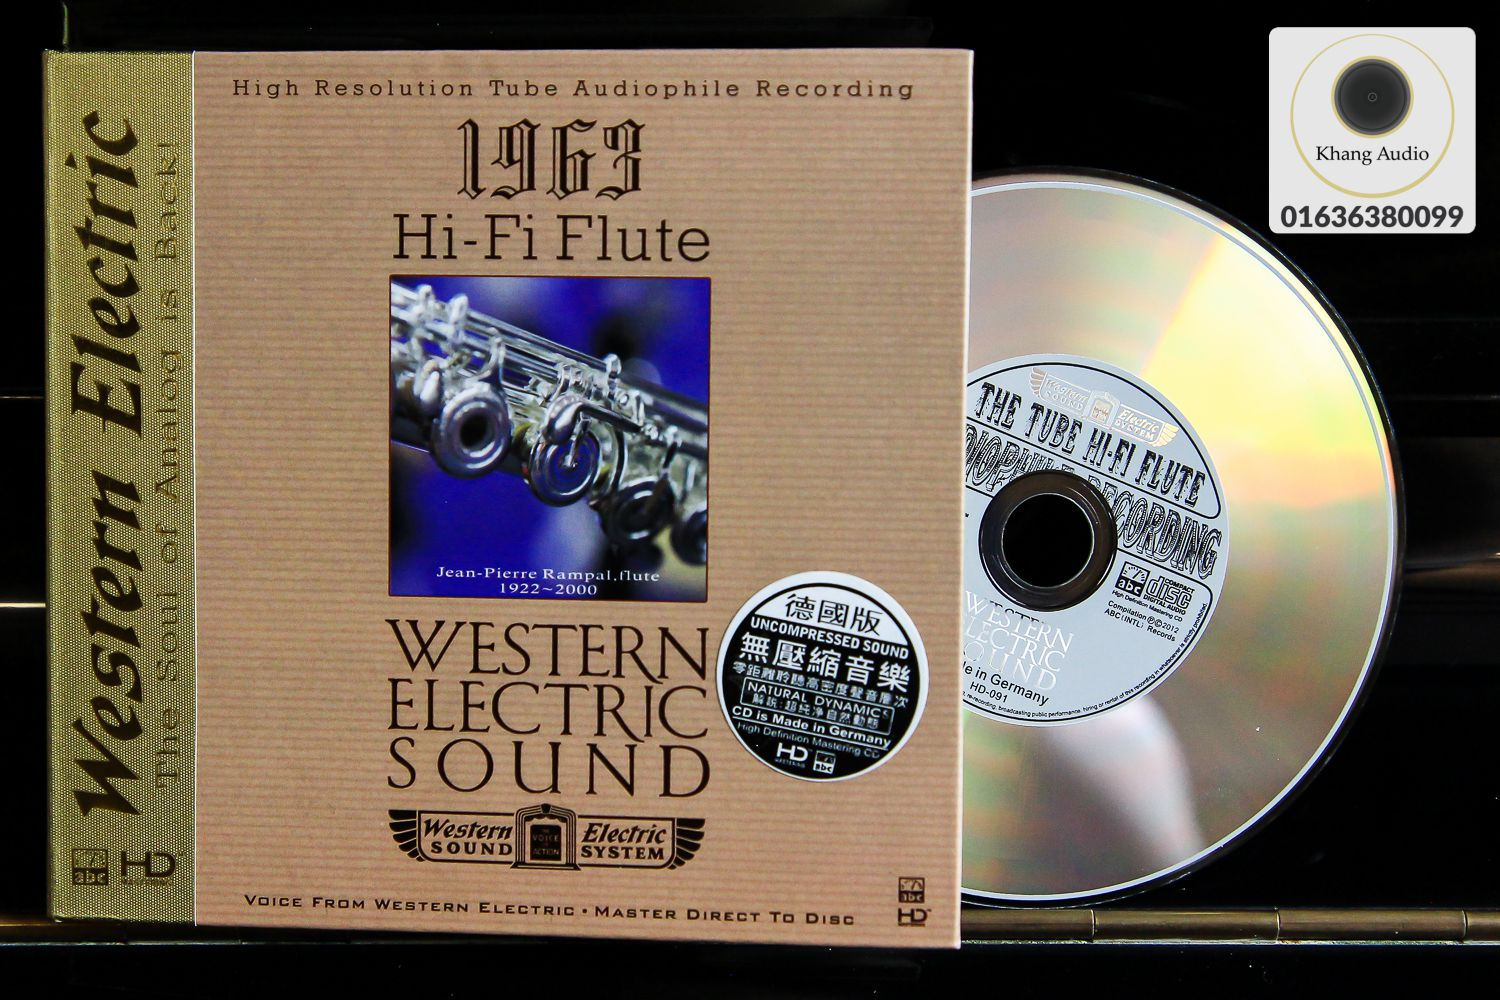 Western Electric Sound - 1963 Hi-Fi Flute HQ